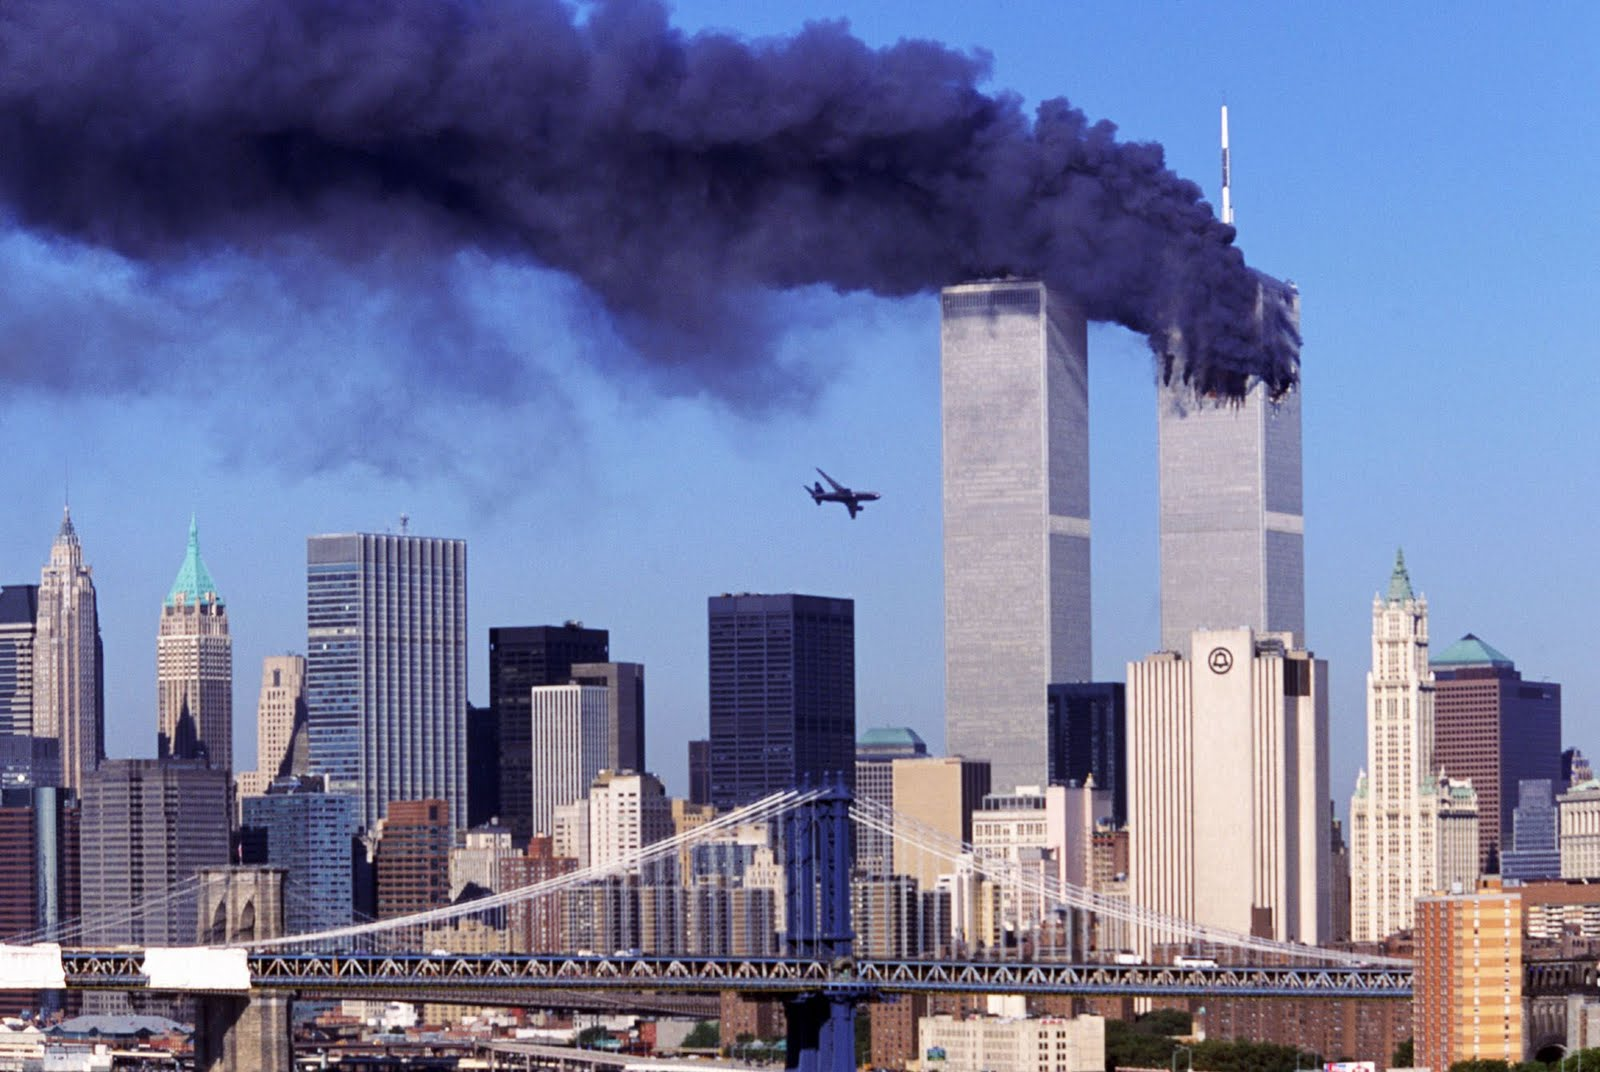 airplane crashes to the World Trade Center New York 11 Sept 2001 1600x1072